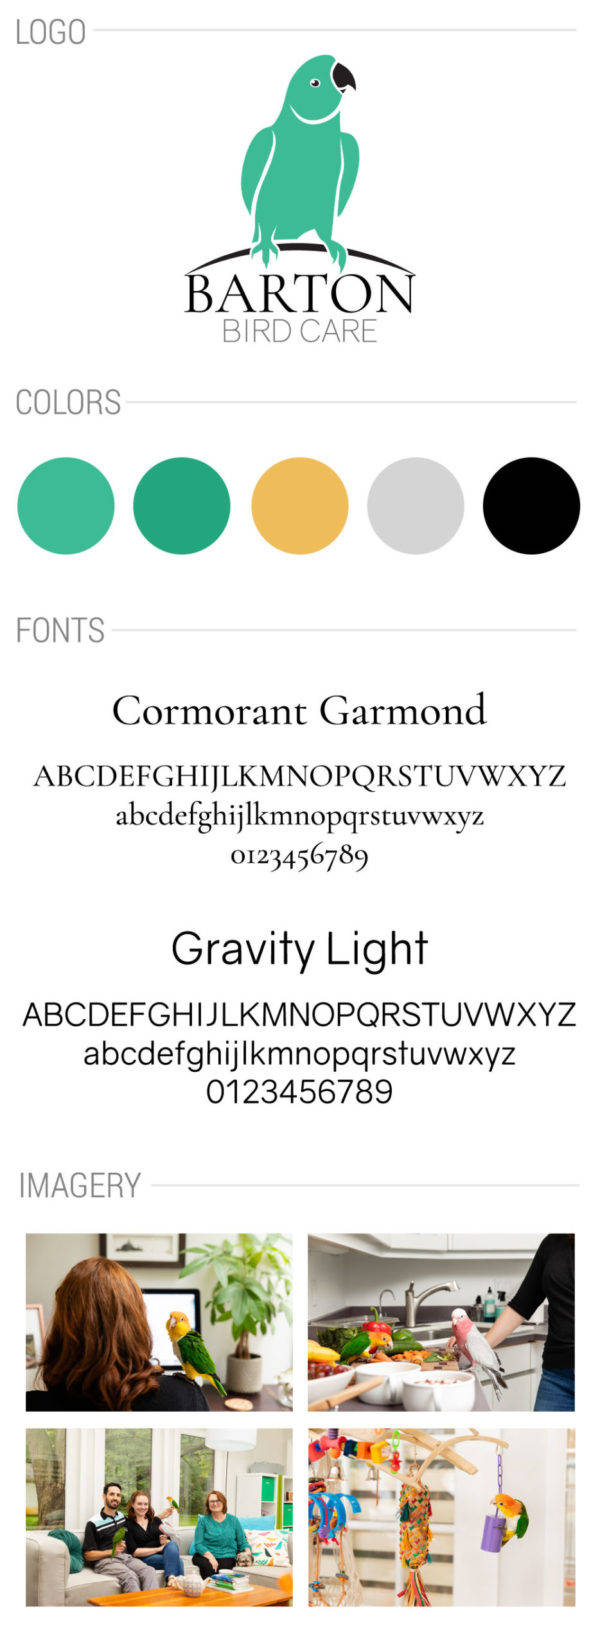 Barton Bird Care style guide sheet including color palette fonts and photos